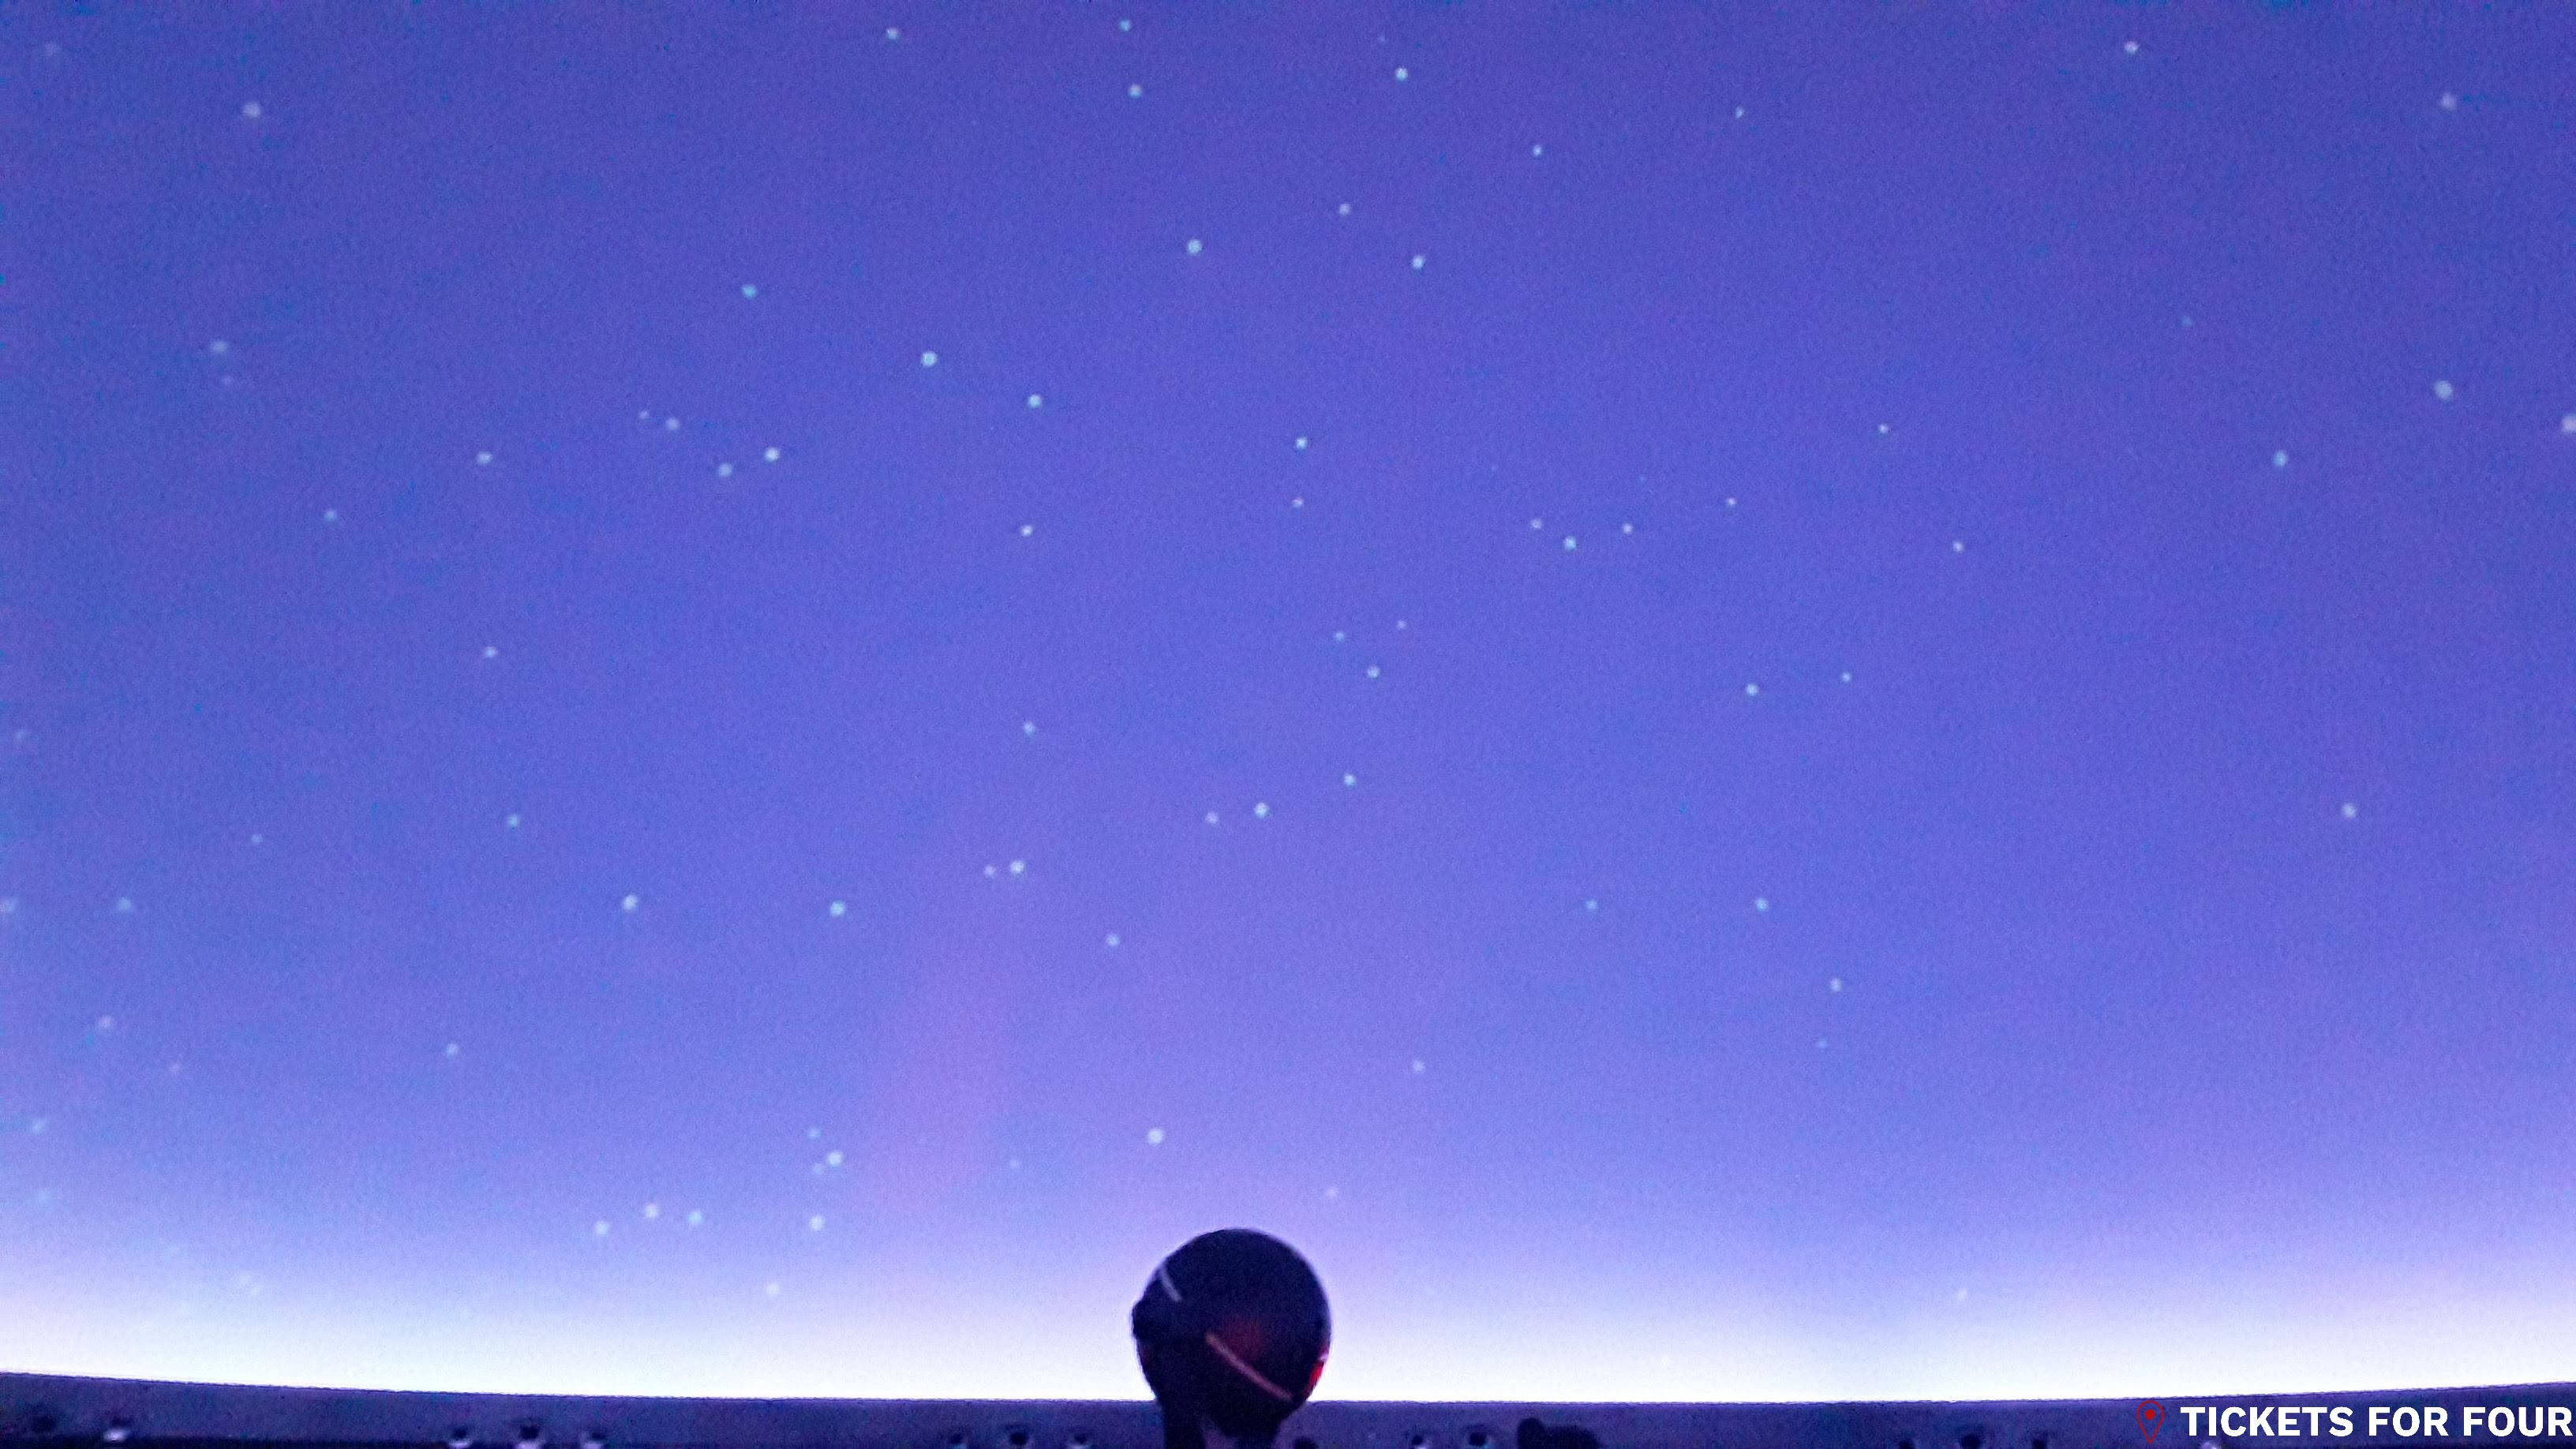 Montreal Planetarium by Tickets For Four